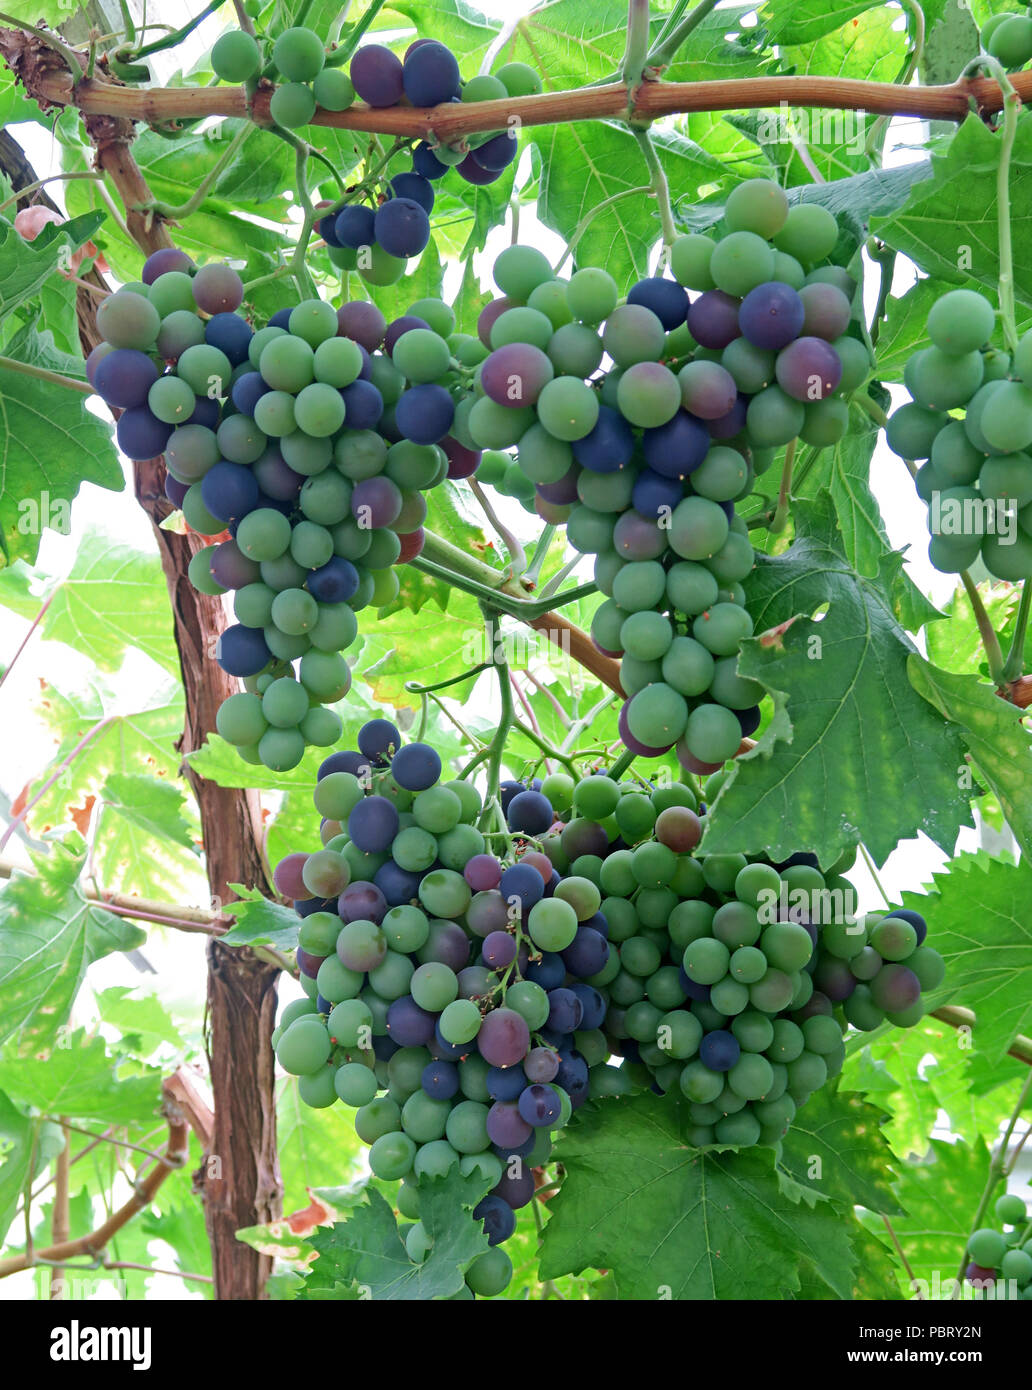 GoTonySmith,@HotpixUK,vine,grape,grapes,hanging,Grappenhall Heys,grapes for wine,wine,vineyard,Cheshire,North West England,UK,North West,England,Vitis,vinifera,green grapes,black grapes,ripe,lush,berry,grape berry,domesticated grape,domesticated grapes,domestic grapes,purple grapes,grape clusters,food,fruit,fruits,cultivated grapes,seedless grapes,seeded grapes,table grapes,wine grapes,secret walled garden,Grape and raisin toxicity in dogs